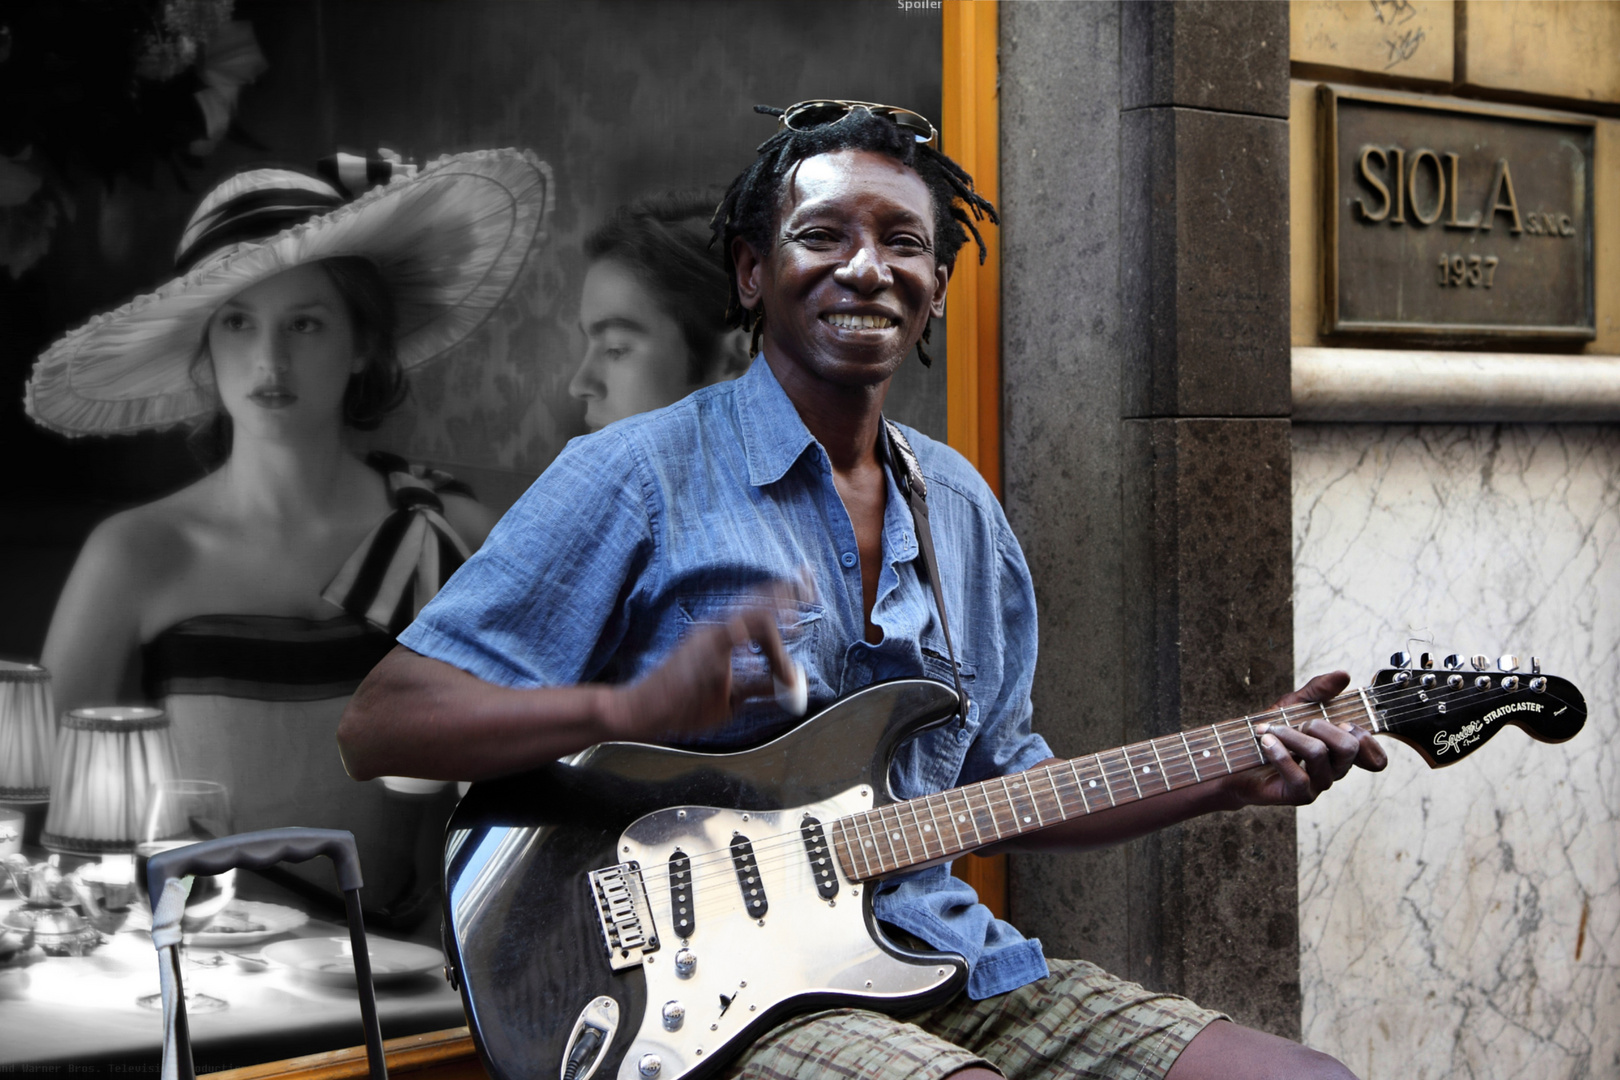 Great street artist, guitarist exceptional street Chiaia Naples - Italy